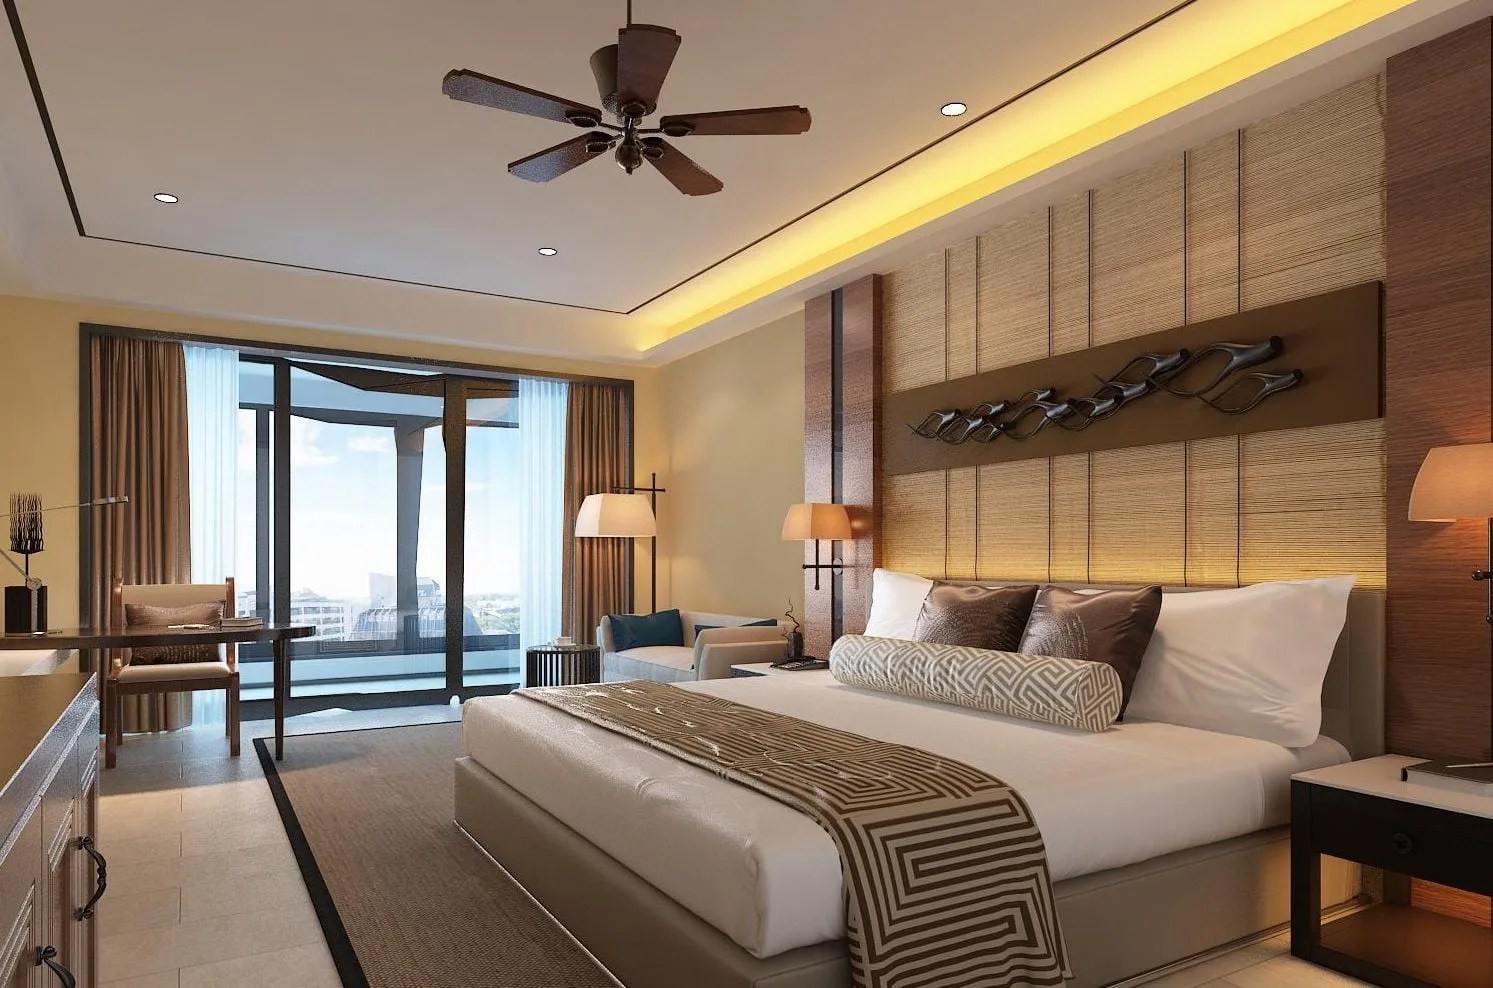 Draw 2d Plan And 3d Interior Bedroom Design By Naimslm